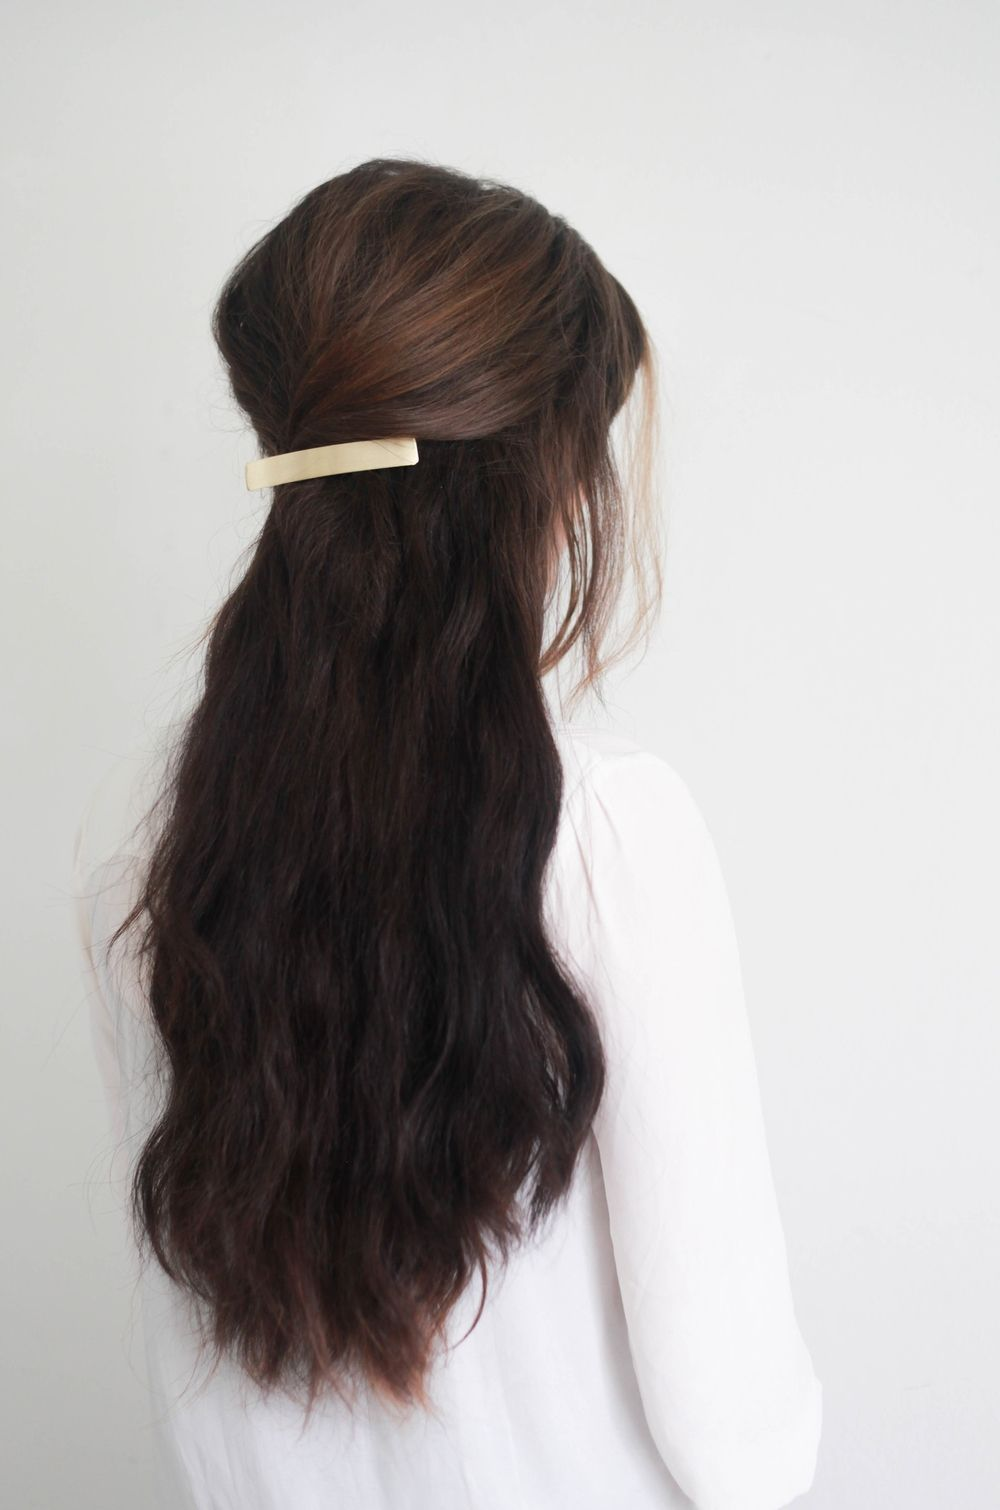 6 Minimal Hair Accessories And Styles That Simply And Elegantly Elevate Your Everyday Look Long Hair Styles Hair Styles Hair Tutorial